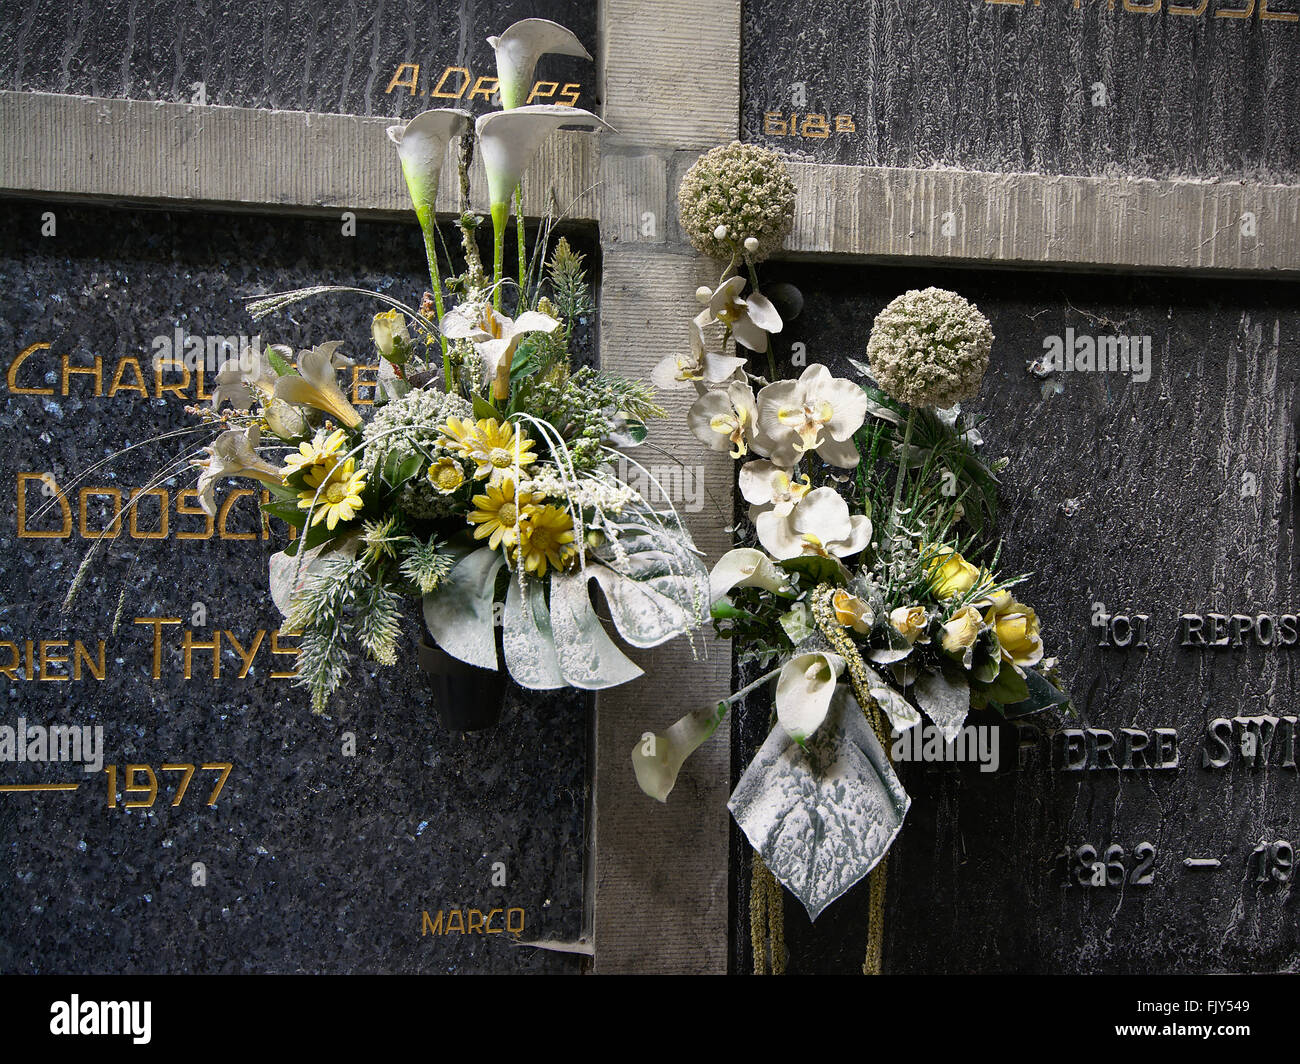 Dusty fake flowers decorating graves in the catacombs of laken Stock ...